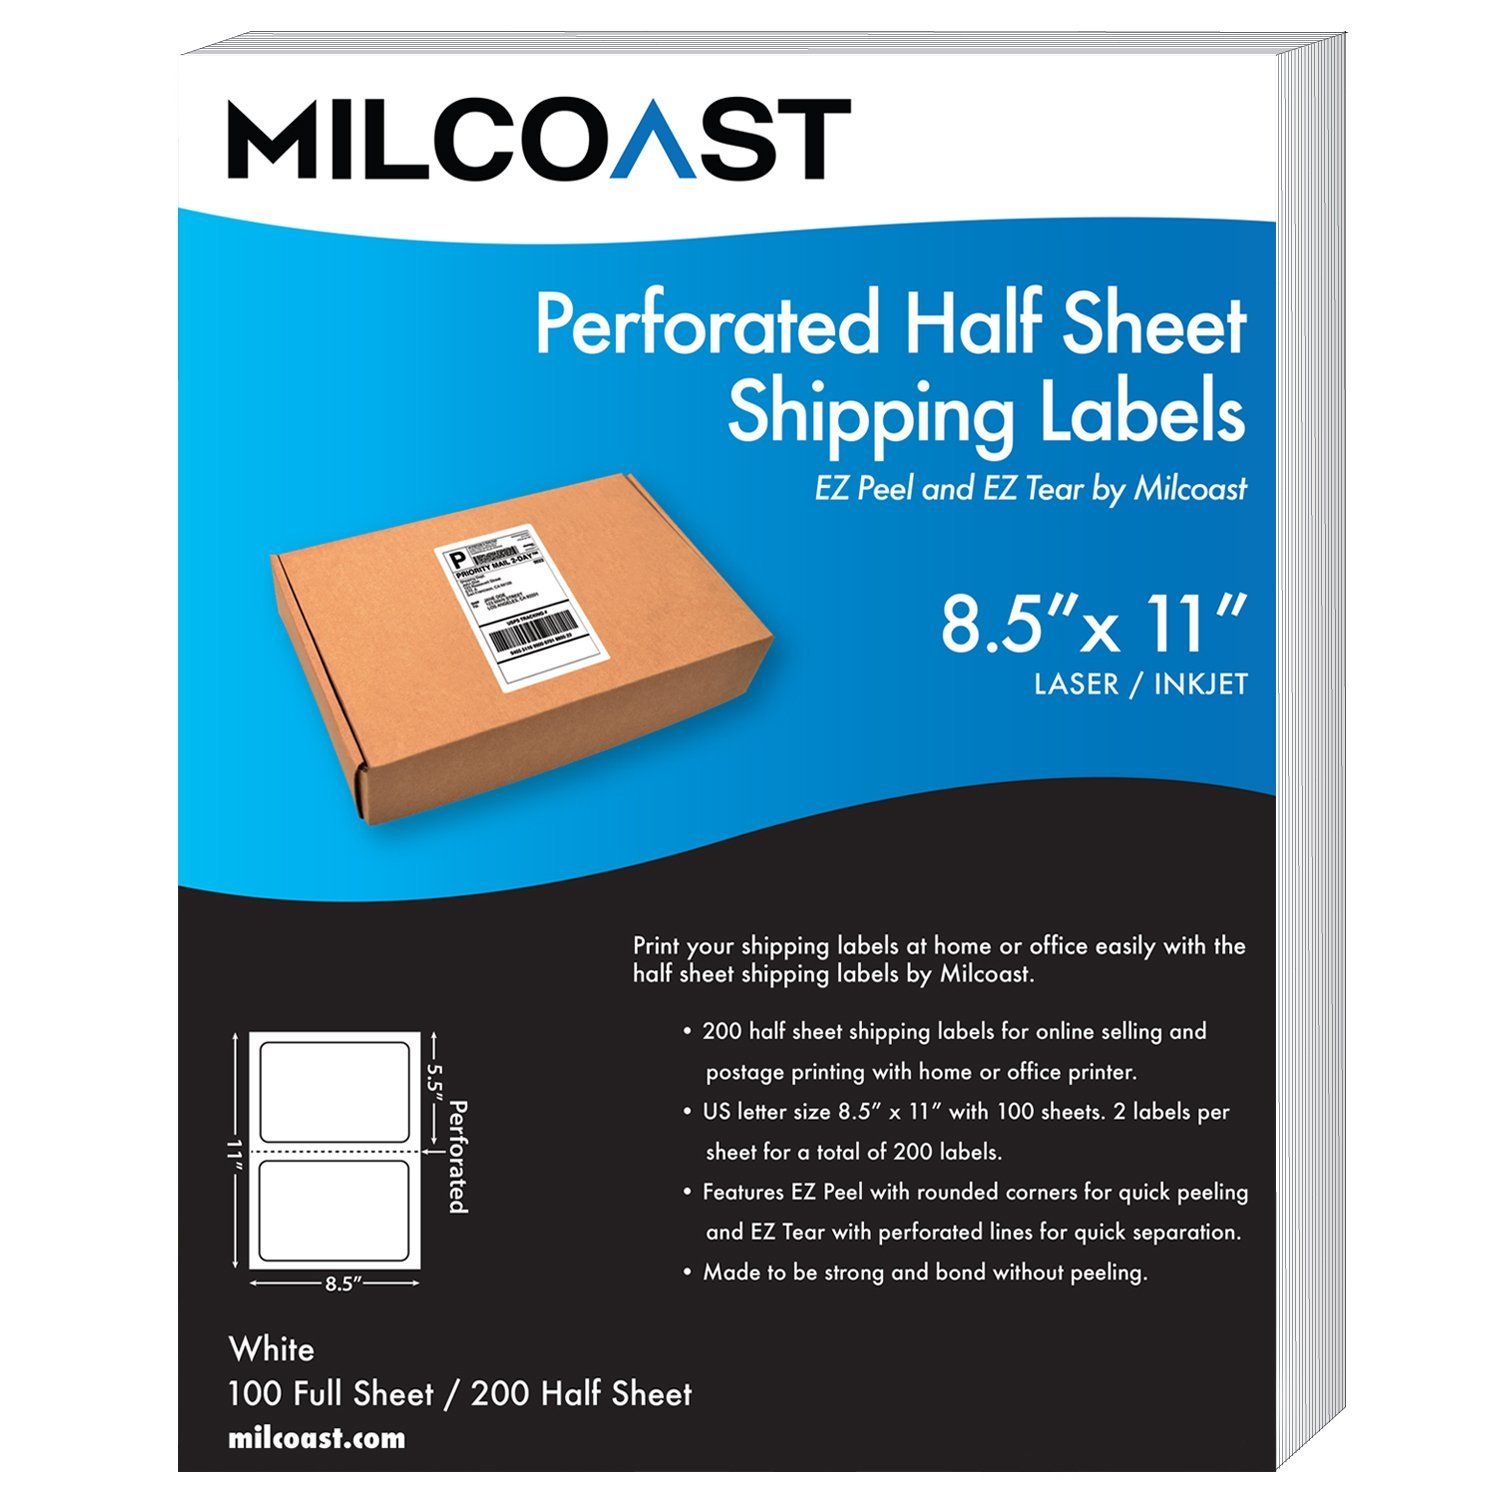 Milcoast Perforated Half Sheet Adhesive Shipping Labels – EZ Peel and EZ Tear, For Laser or InkJet Printers - For Shipping, FBA, UPS, USPS, FedEx (100 Sheets)